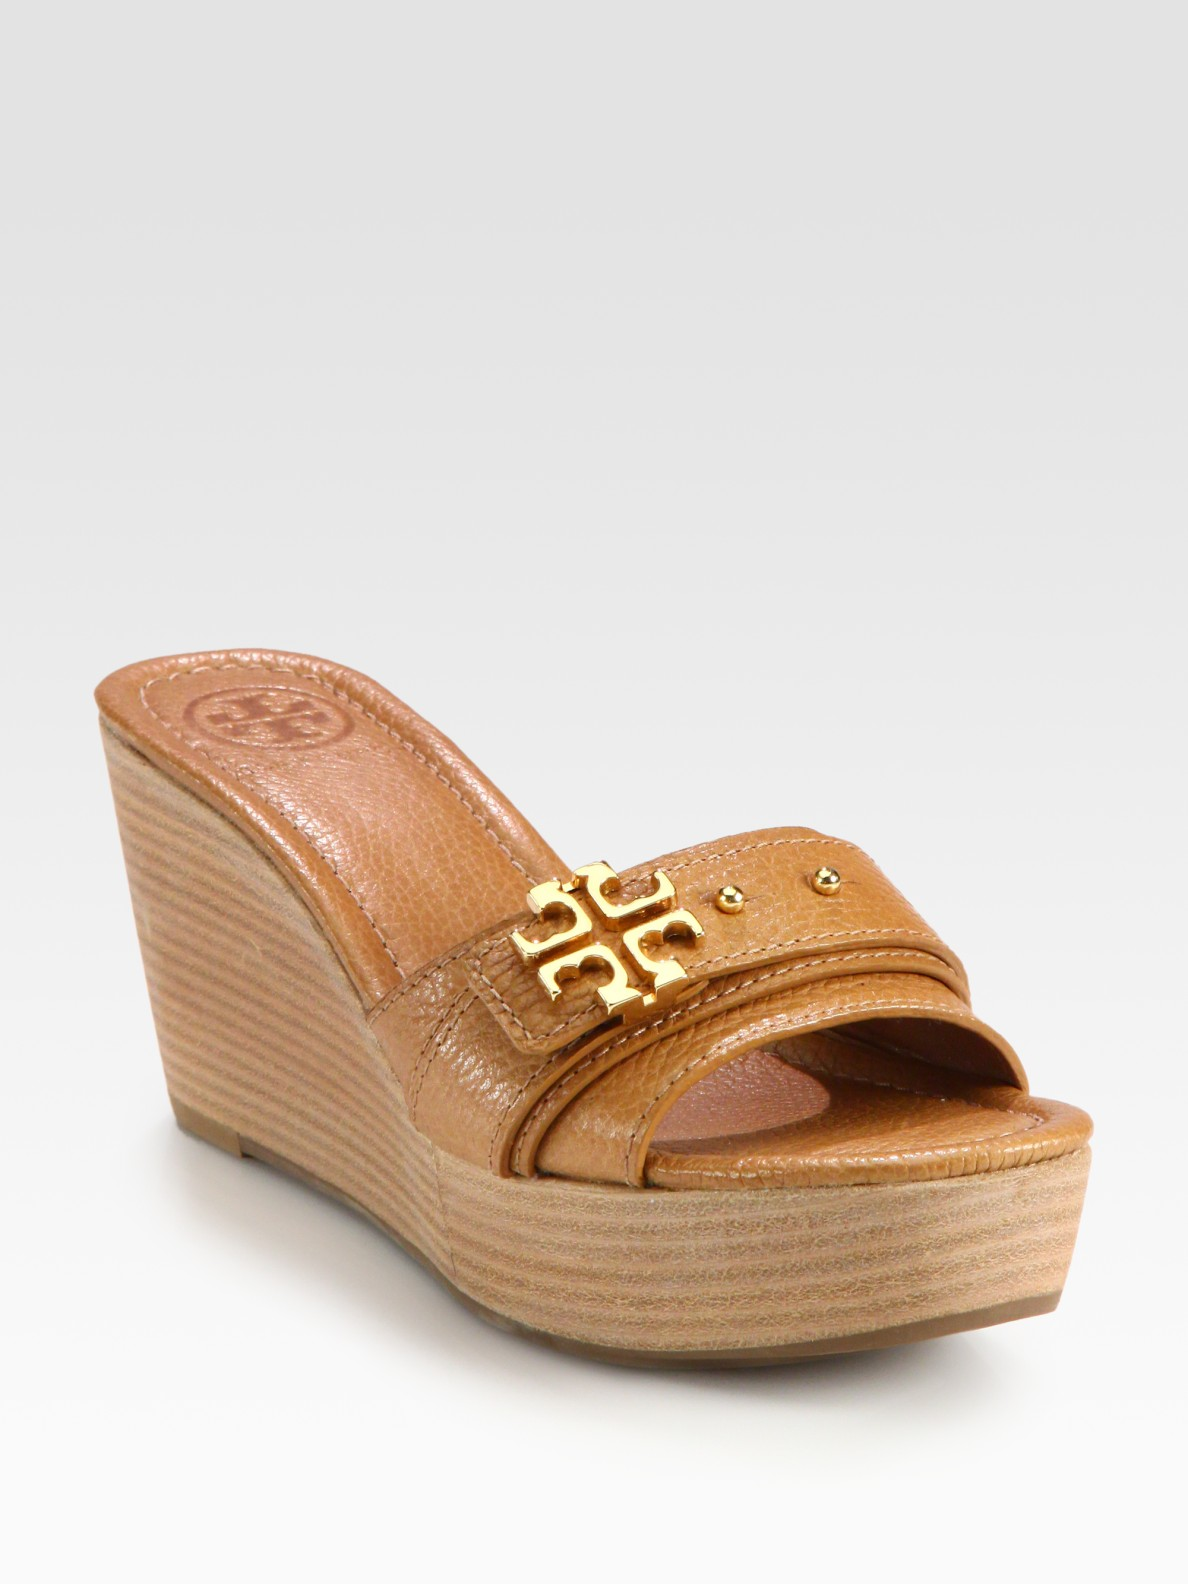 Tory Burch Elina Pebbled Leather Logo Wedge Sandals In